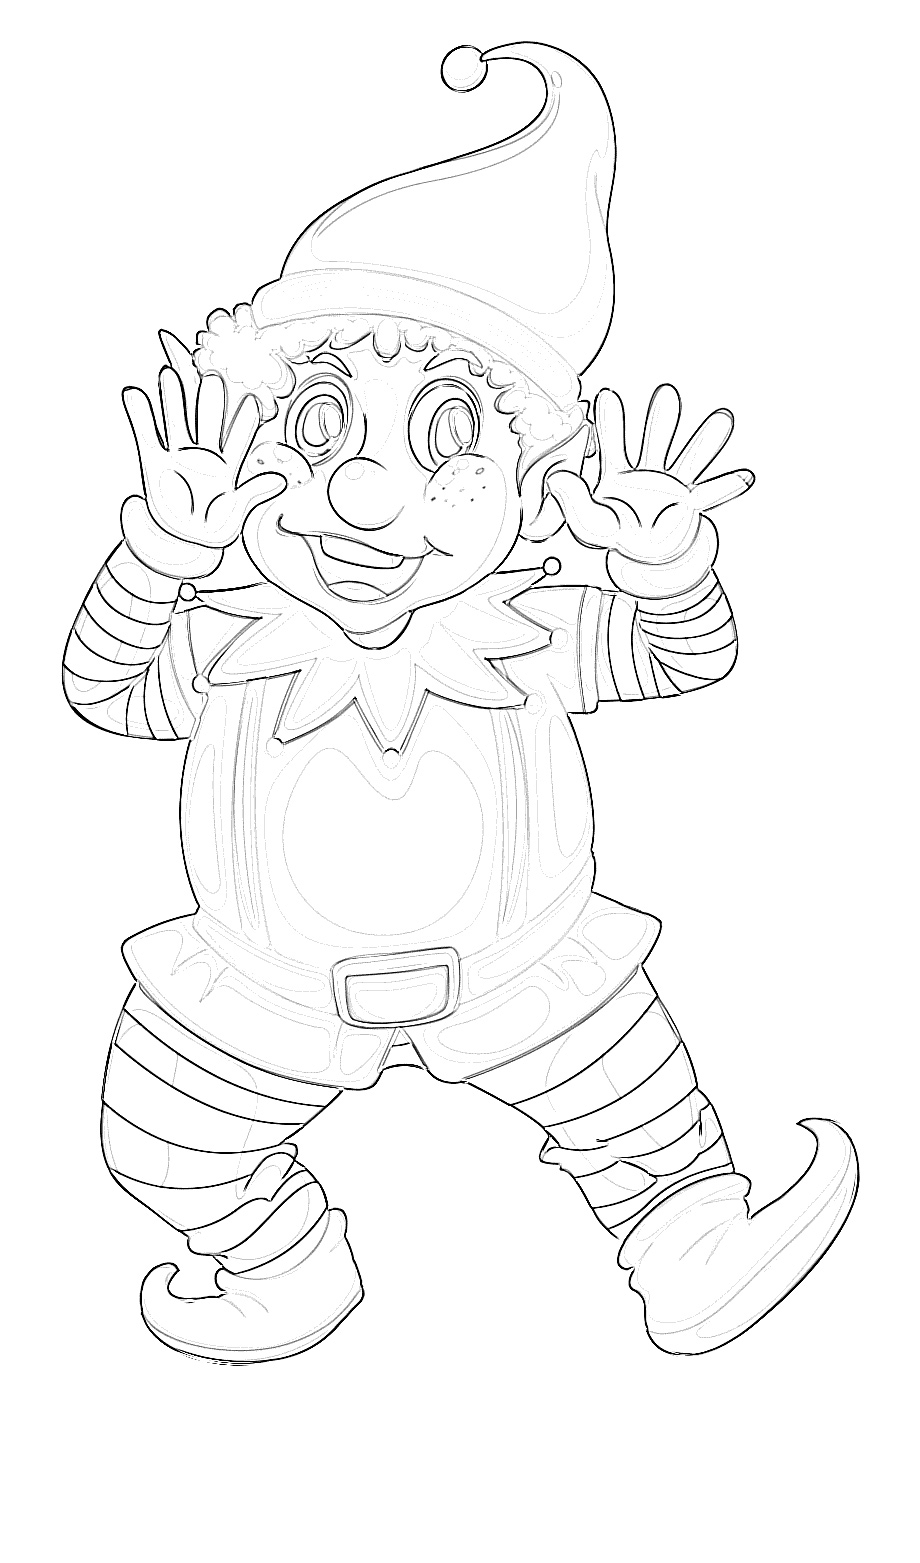 Tis' the Season Jolly Elf Coloring Page